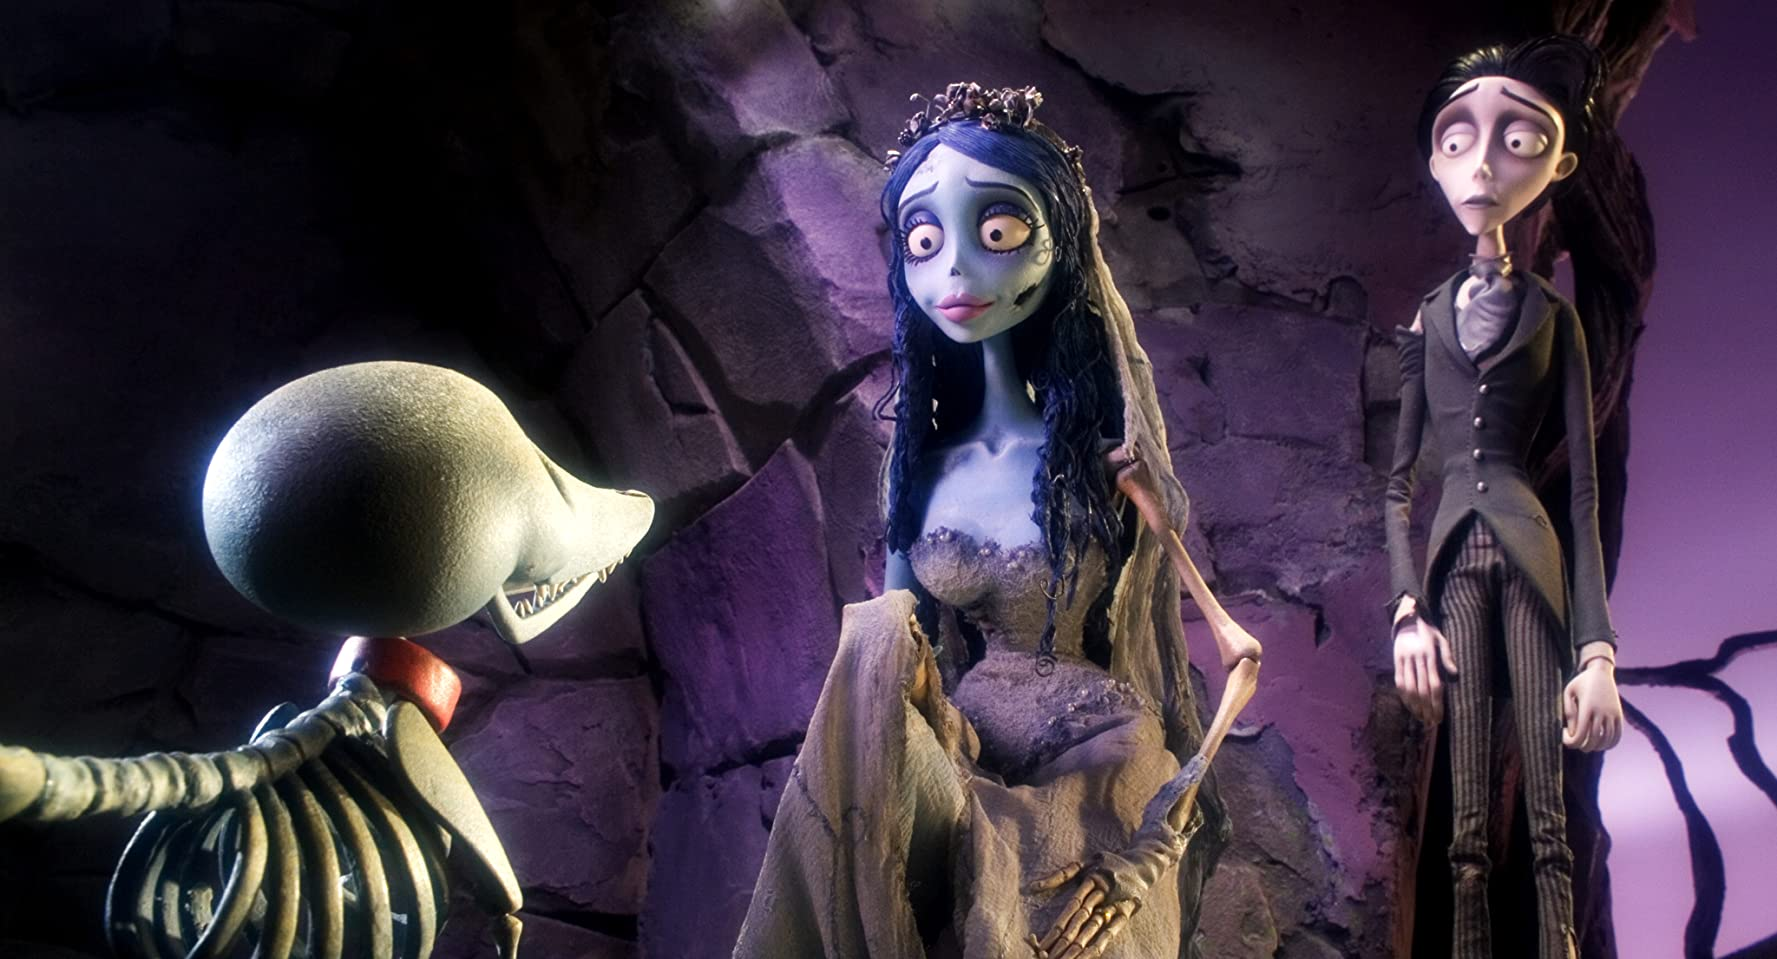 Johnny Depp and Helena Bonham Carter in Corpse Bride (2005)